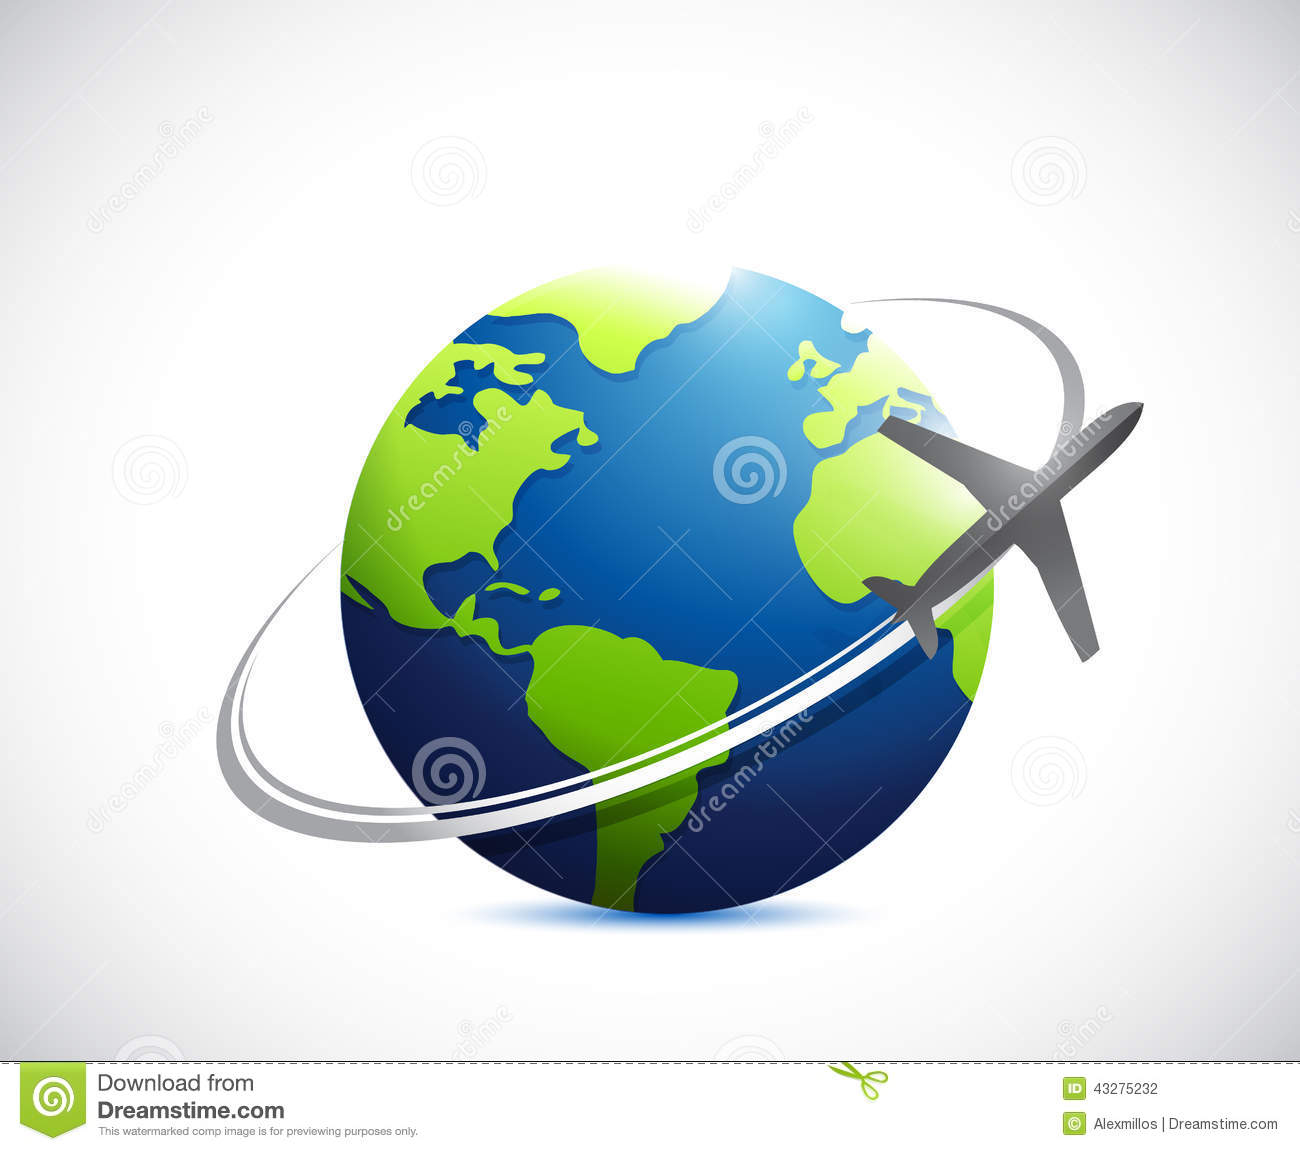 earth countries with Stock Illustration Globe Airplane Route Illustration Design Over White Background Image43275232 on Stock Illustration Globe Airplane Route Illustration Design Over White Background Image43275232 as well File Media PA old High School further File  to supermarkt furthermore File Eidersperrwerk ty20060715r0012451 besides City.